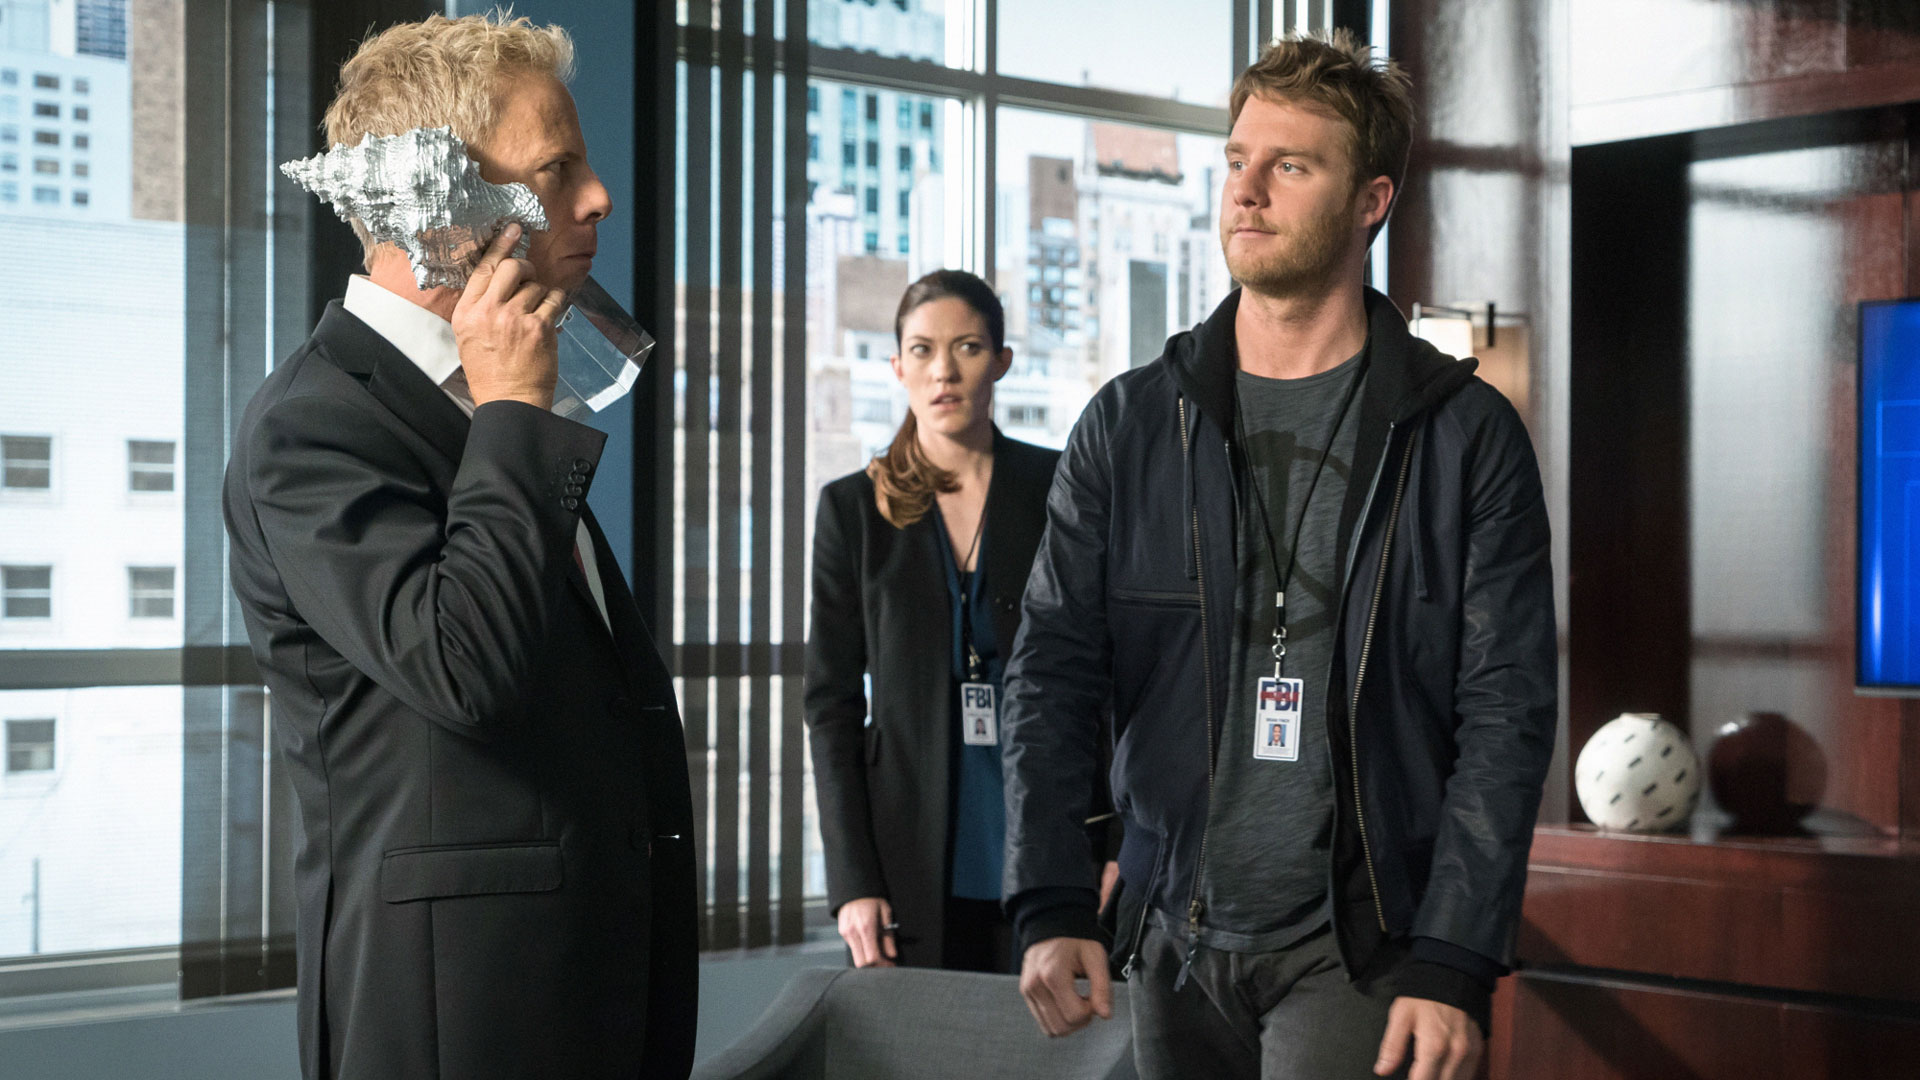 Greg Germann as ADIC Grady Johnson, Jake McDorman as Brian Finch, and Jennifer Carpenter as Agent Rebecca Harris